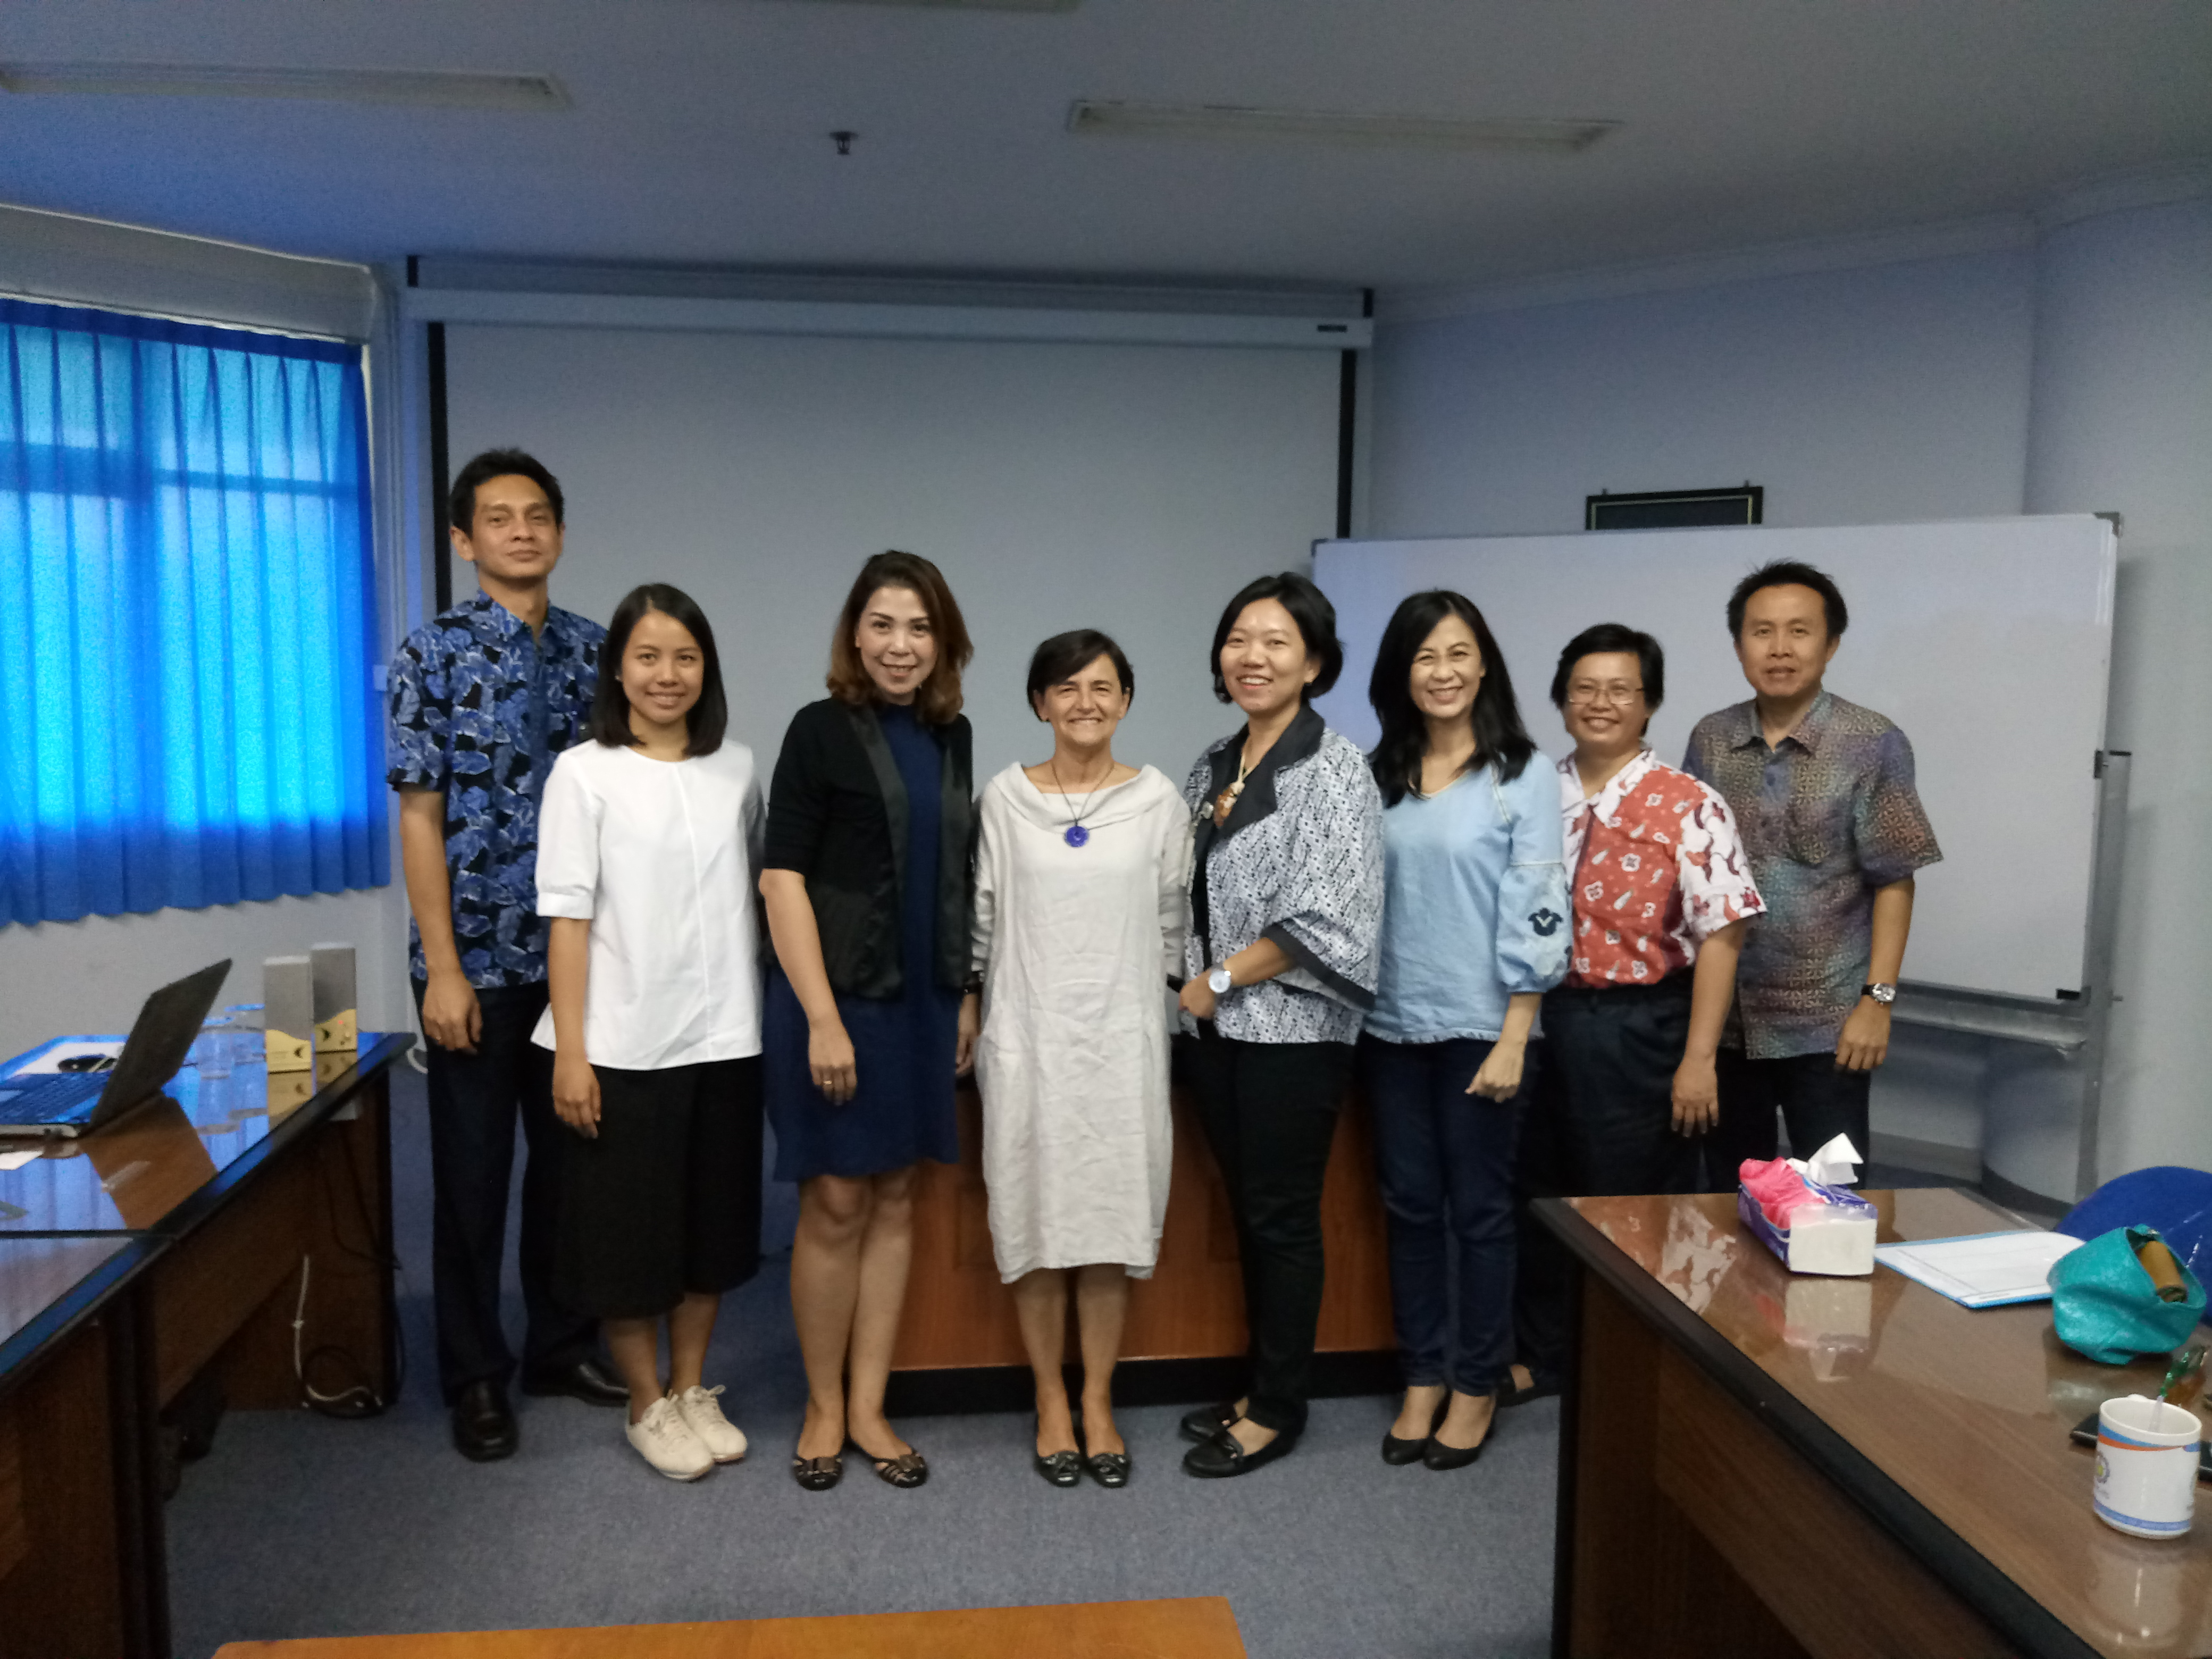 Marina at Petra University with members of the university and fashion industry.